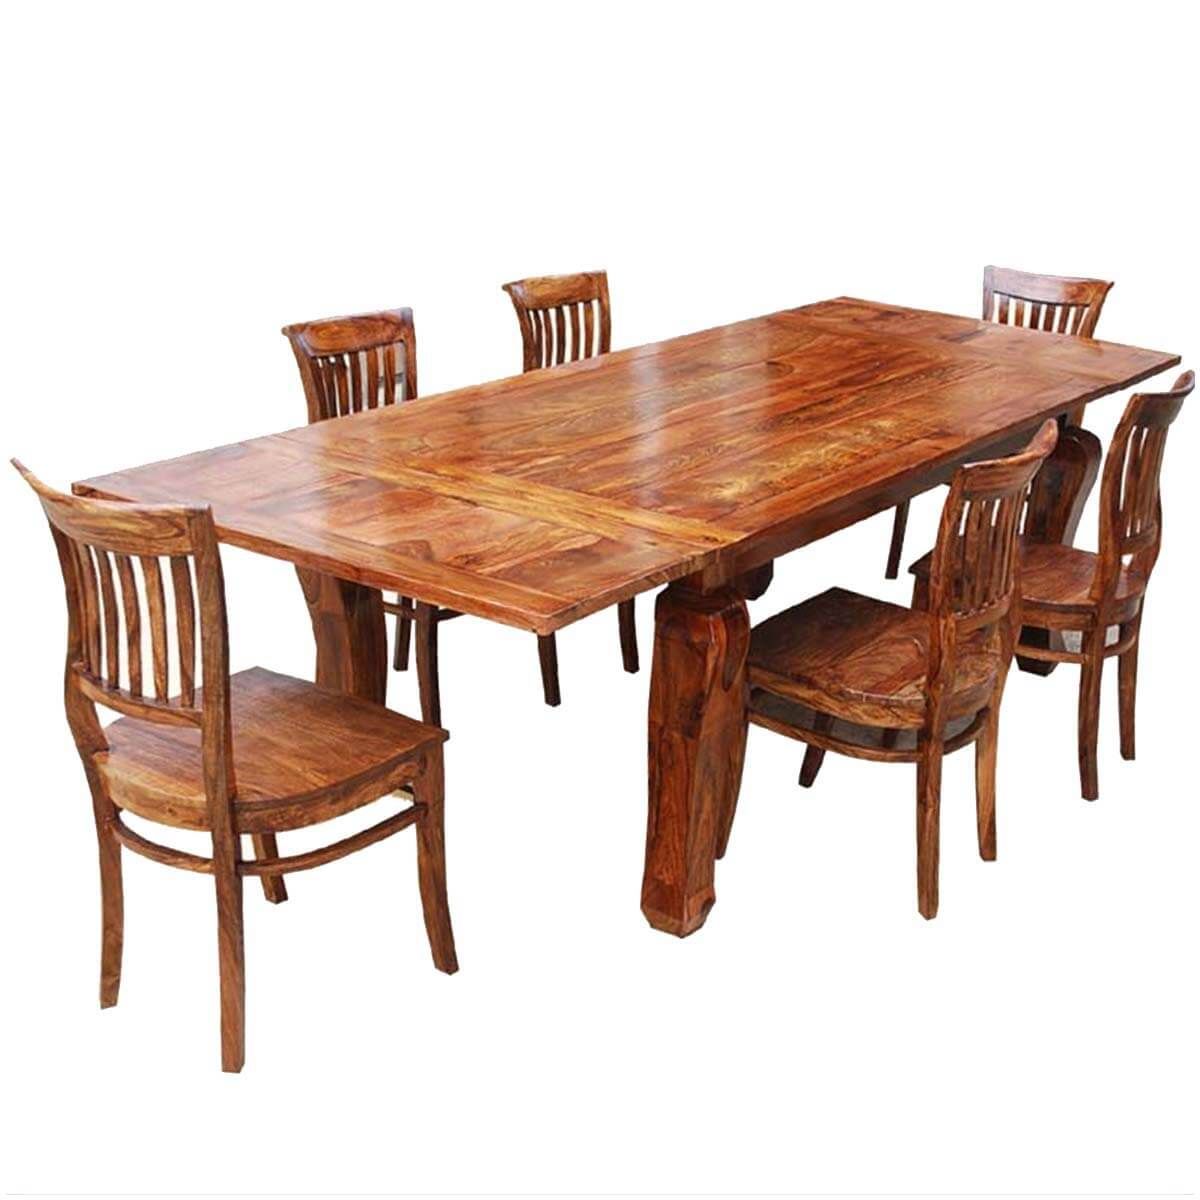 Rustic Lincoln Study Dining Table amp 6 Barrel back Chairs w  : 1888 from www.sierralivingconcepts.com size 1200 x 1200 jpeg 107kB